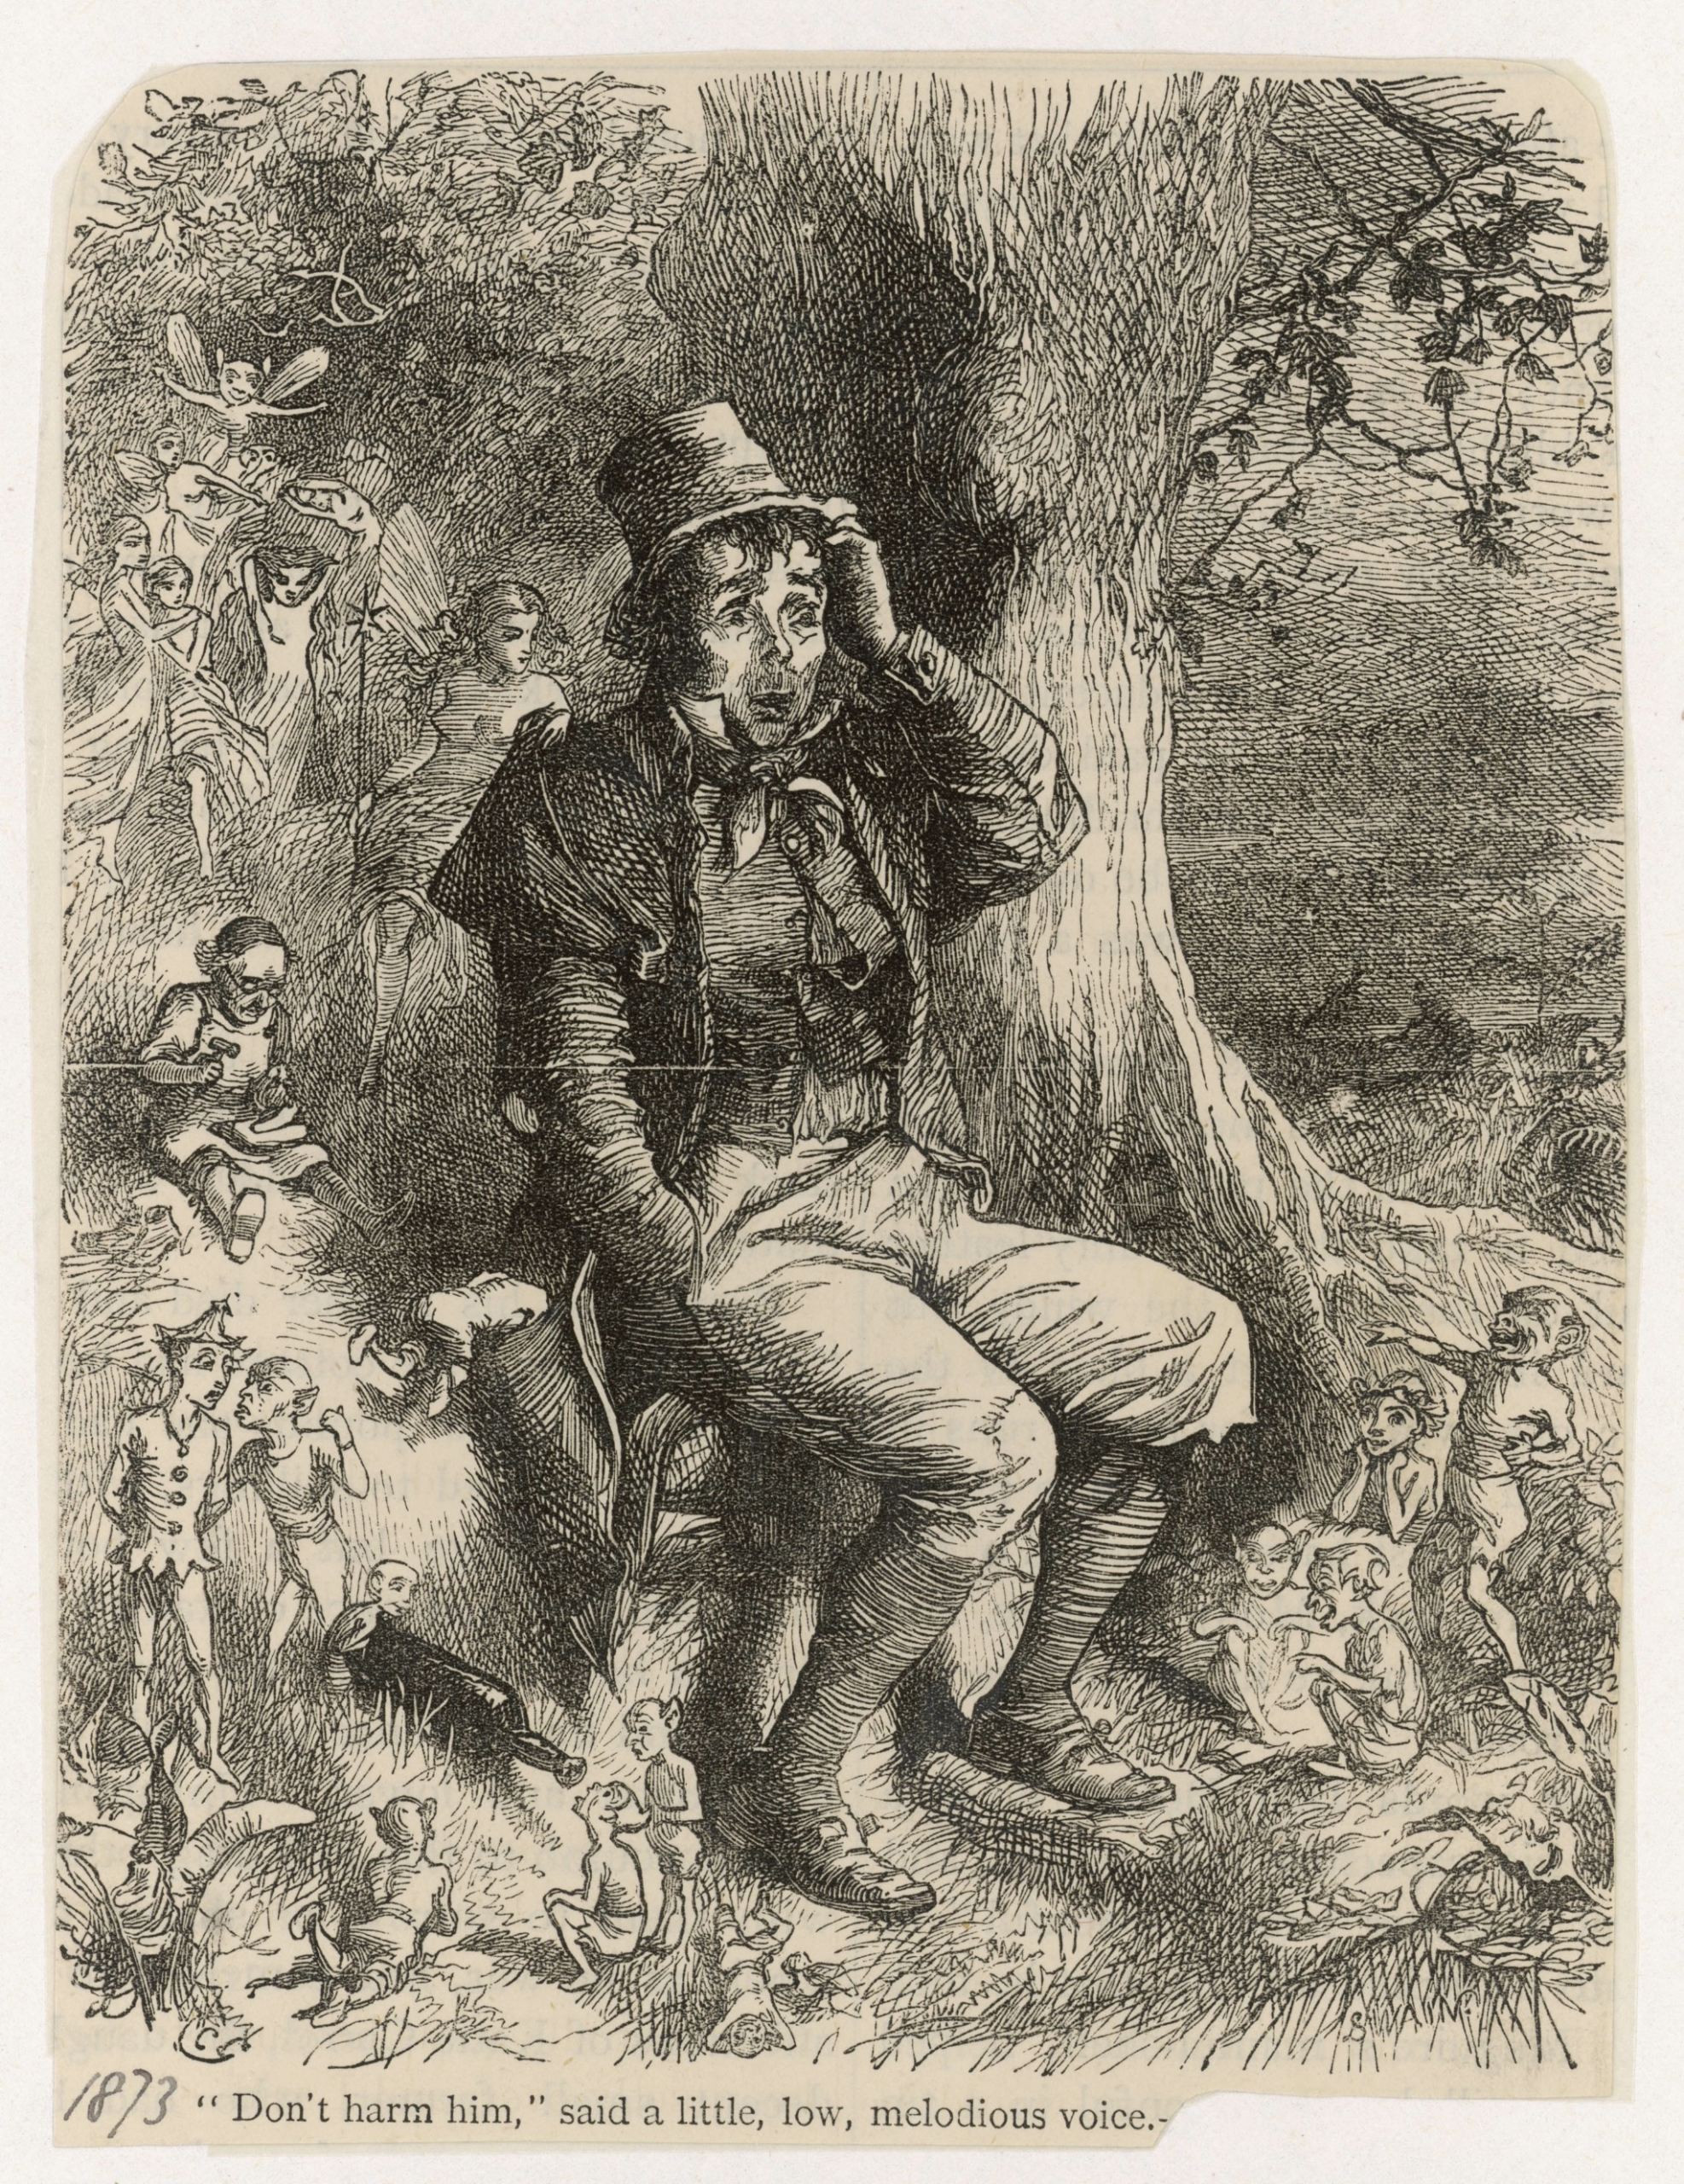 A drawing from 1873 depicting a man with leprechauns.